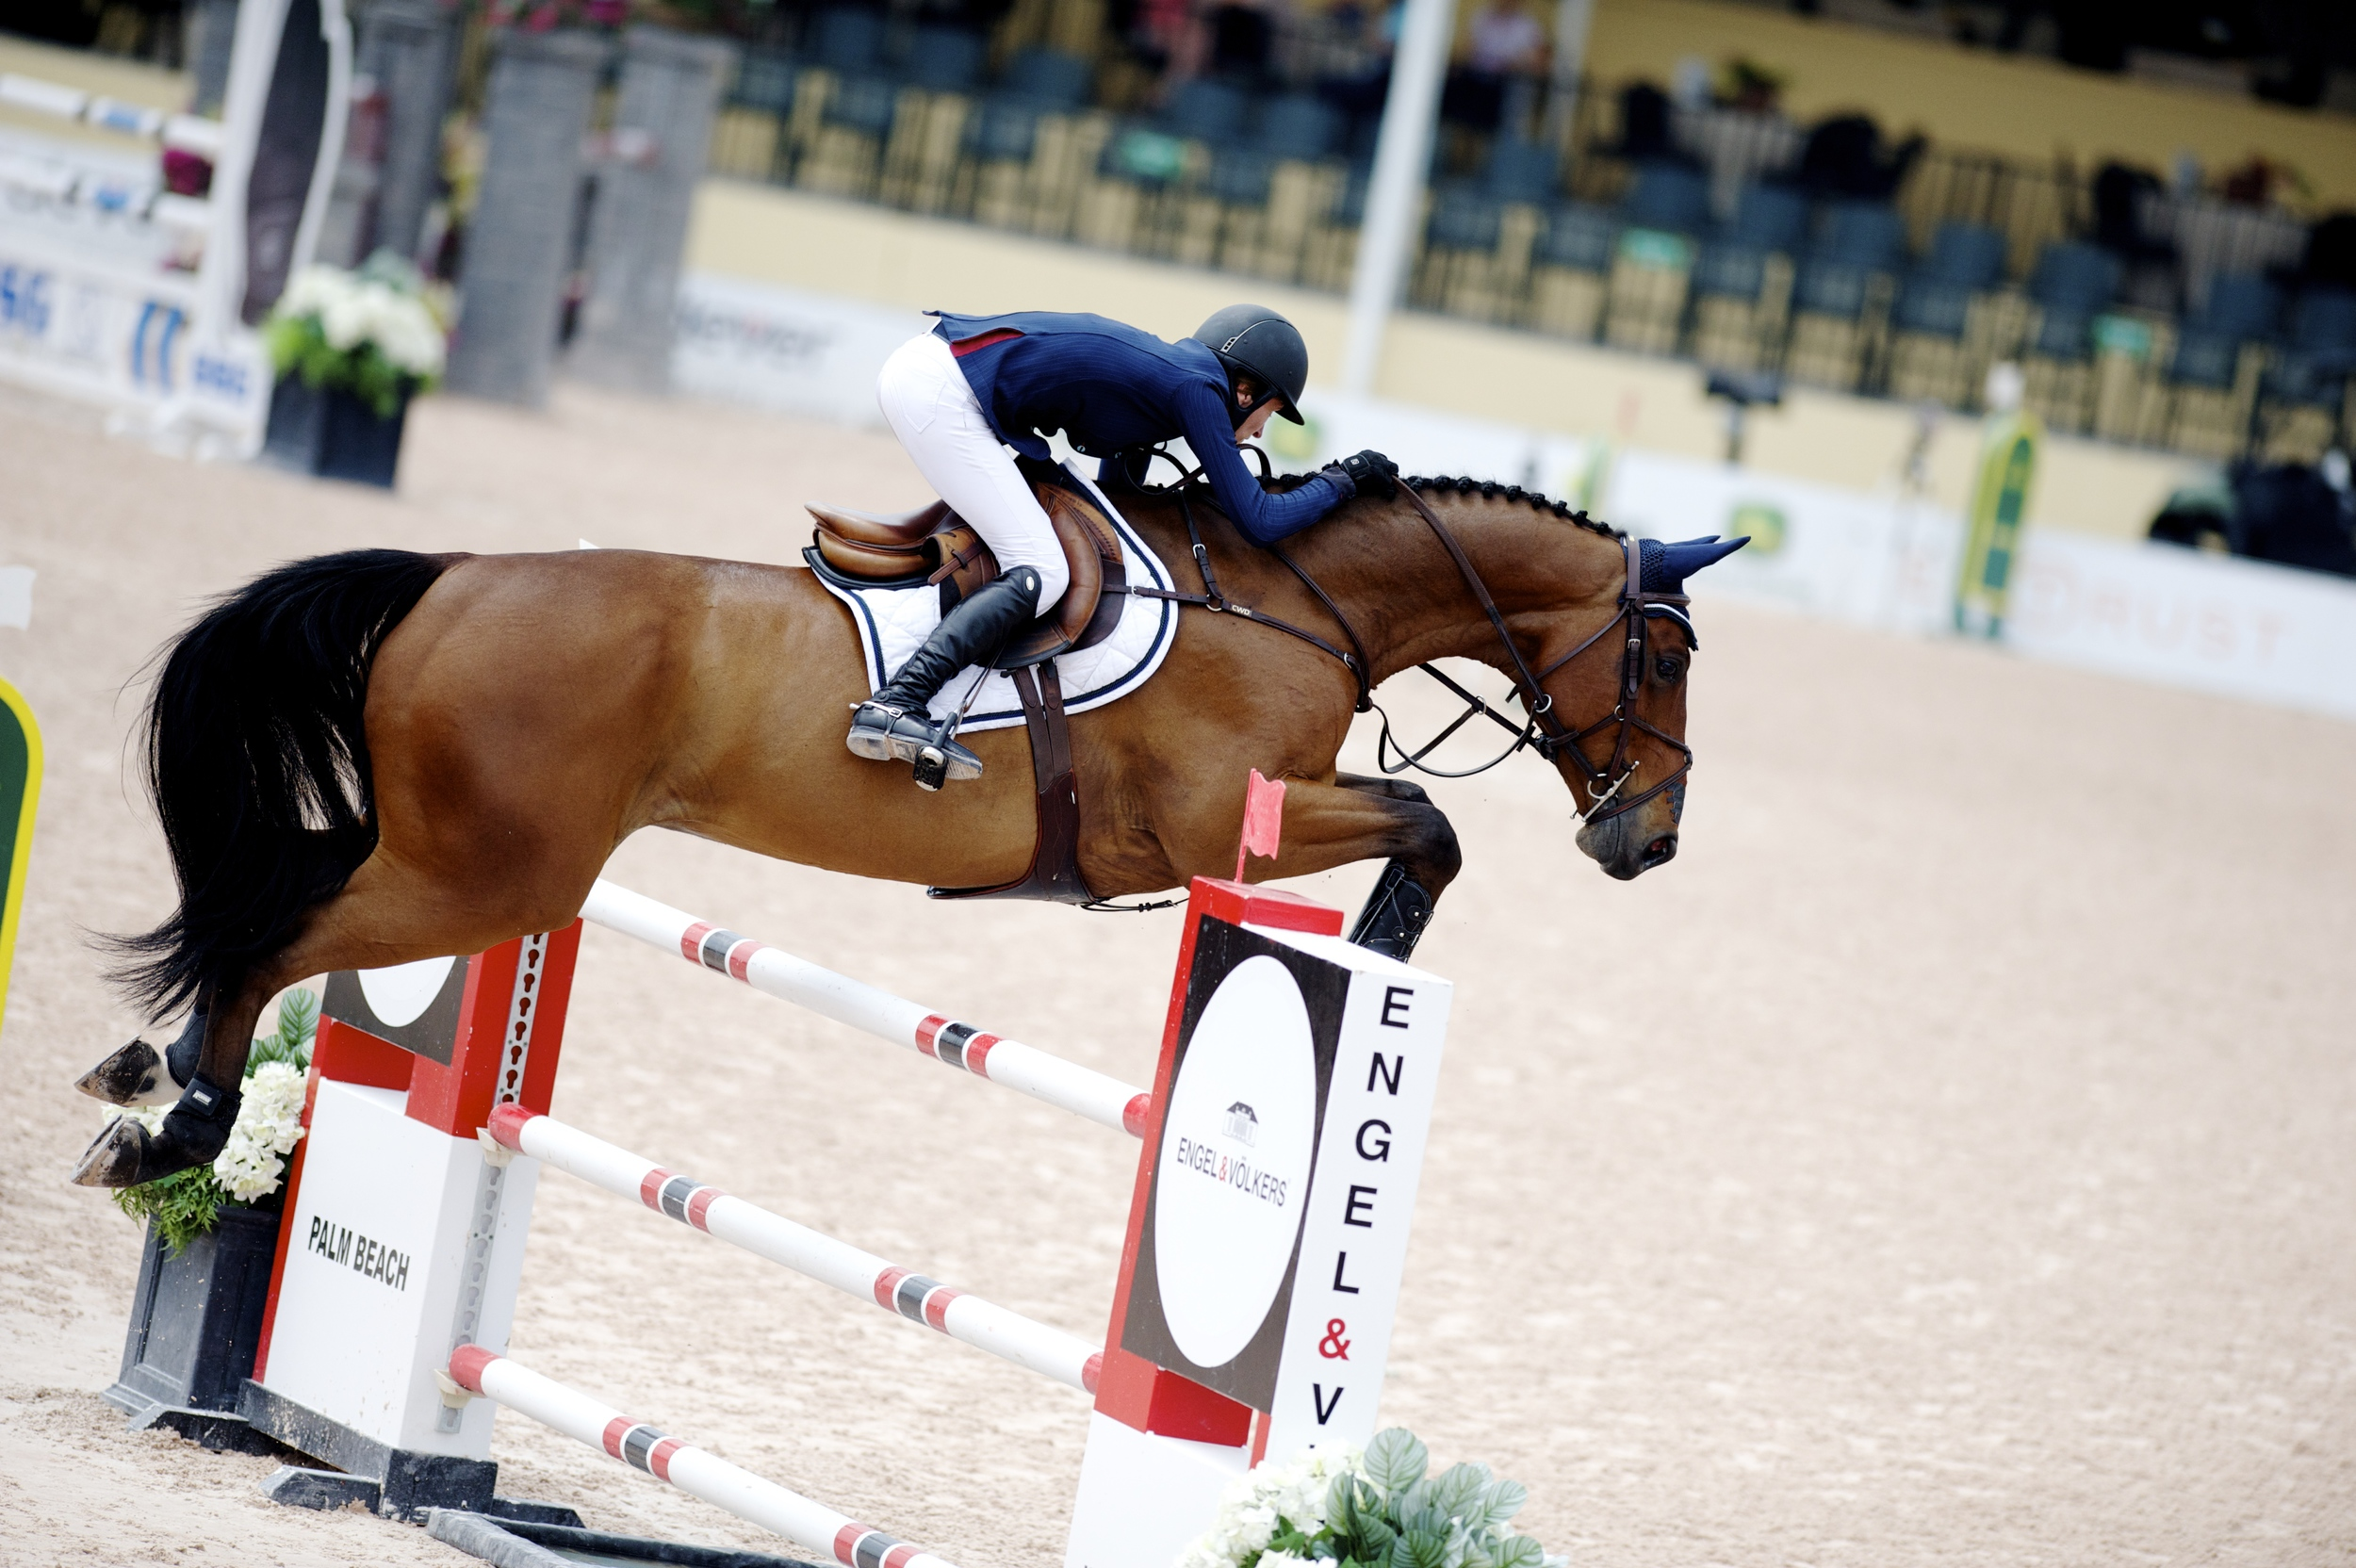 Molly Ashe and Astakkato finished 6th in today's $20,000 Adequan 7 YO Classic II